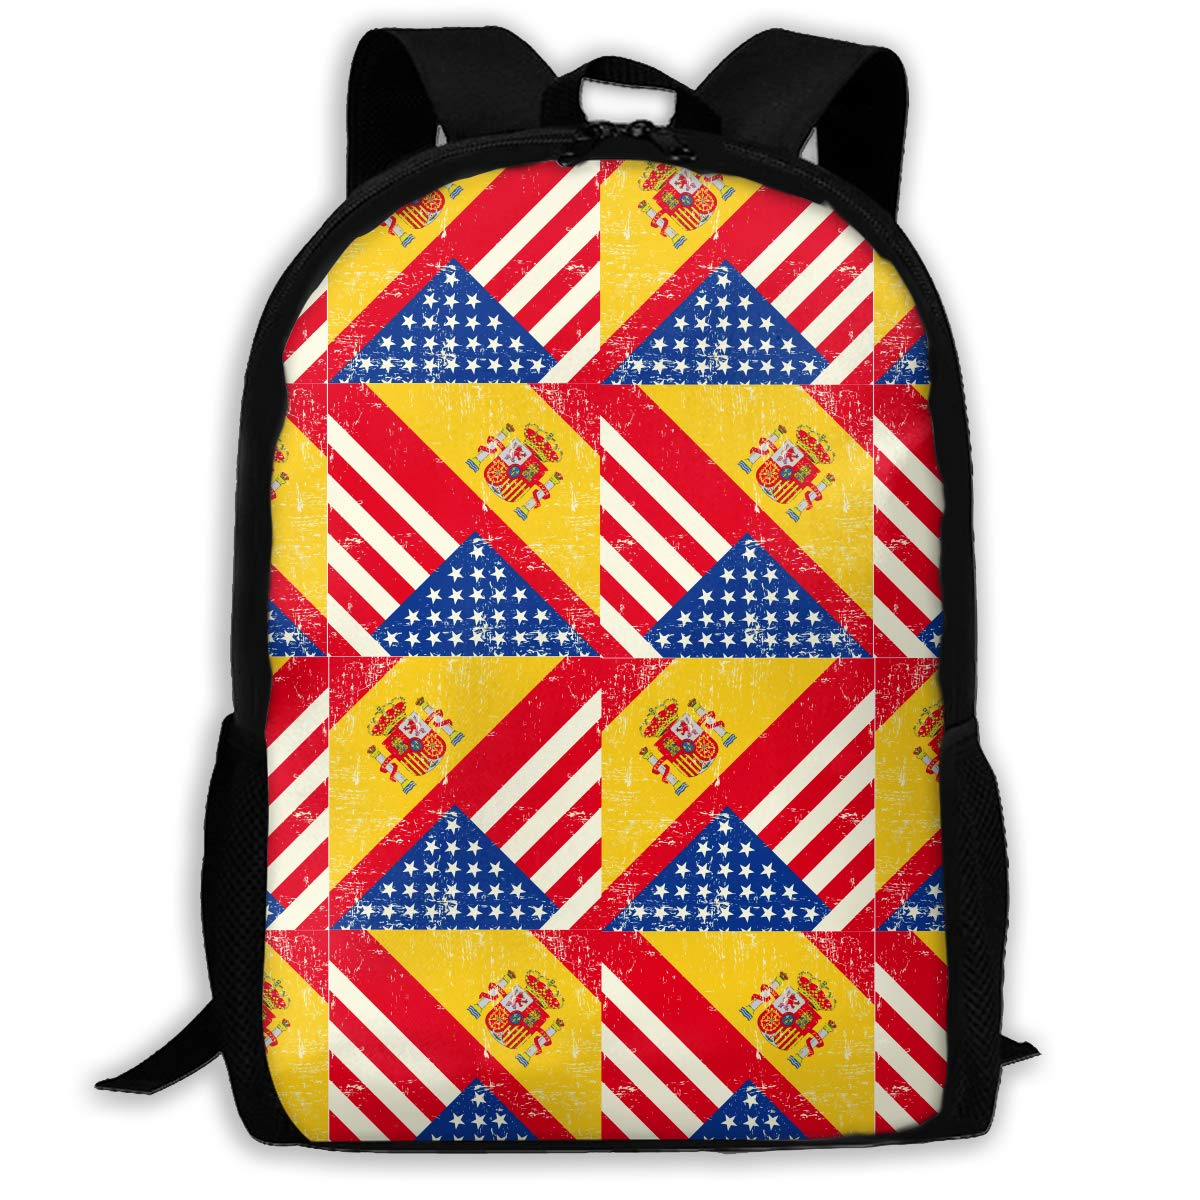 5788f3543034 NO4LRM Adult Shoulder Bag USA American Spain Flag Multipurpose 3D Printing  Casual Backpack School Bags for Travel Camping Hiking Outdoor Sports Men ...